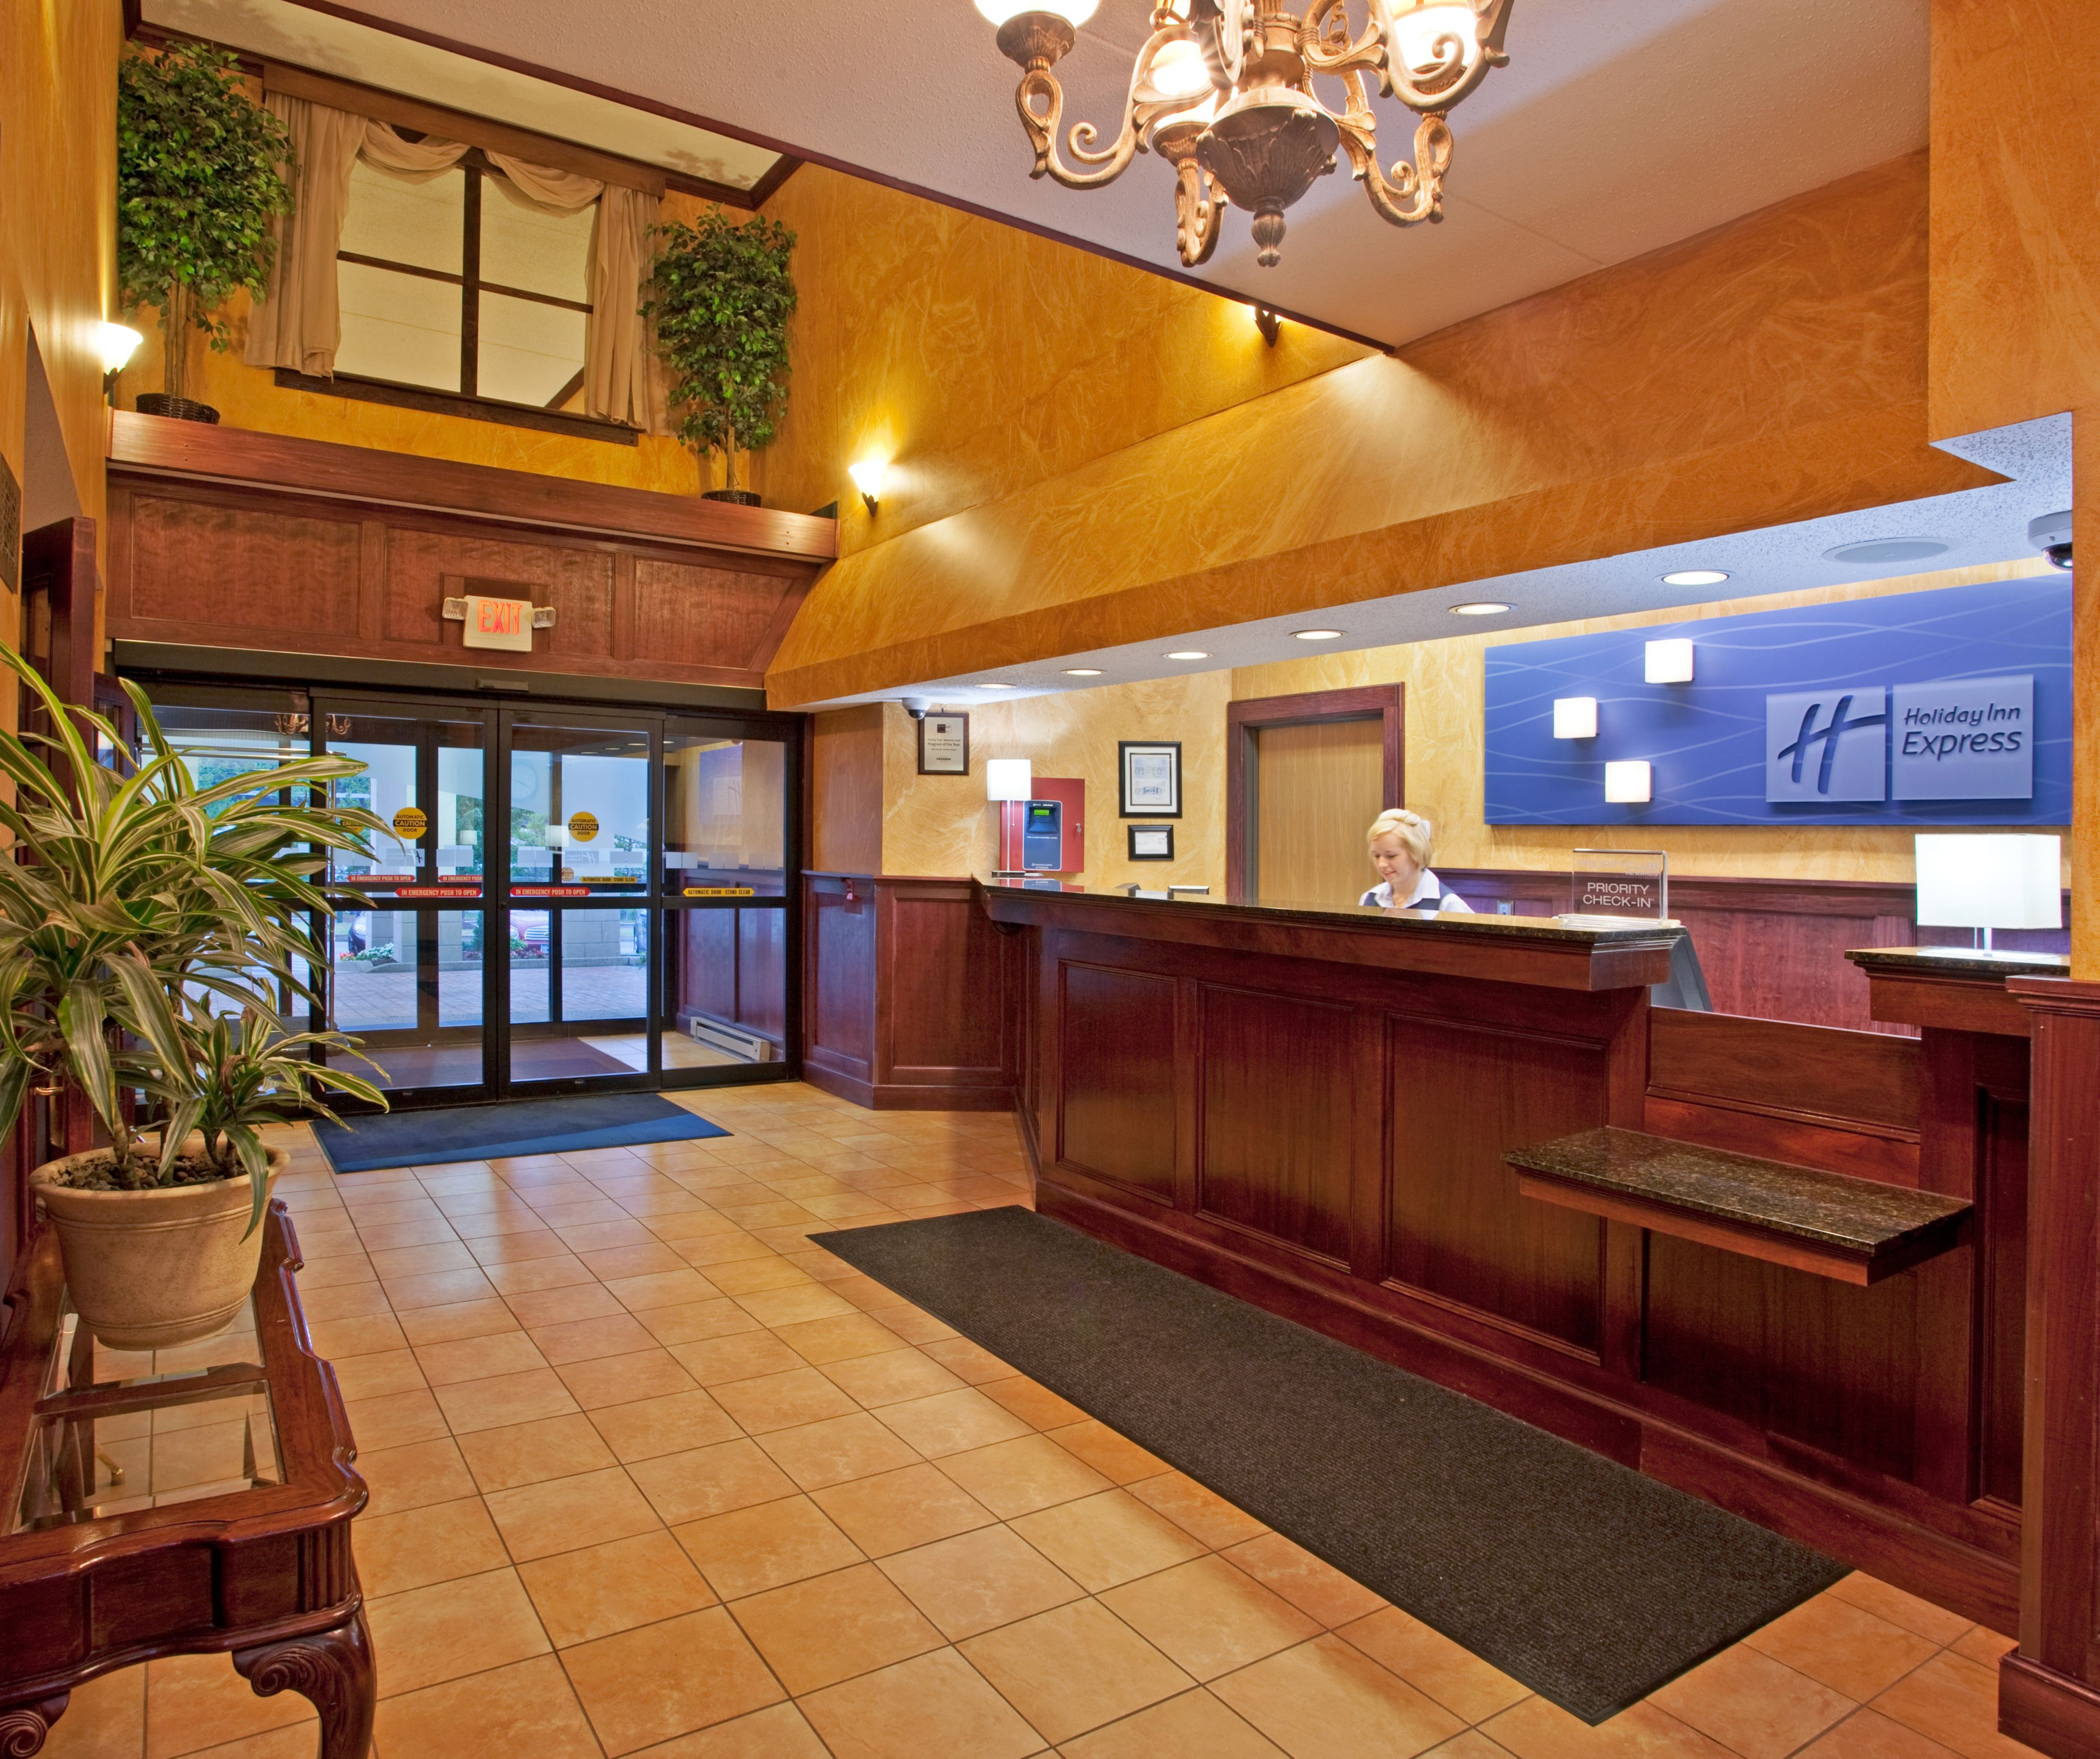 Holiday Inn Express Pittsburgh-North (Harmarville) image 6